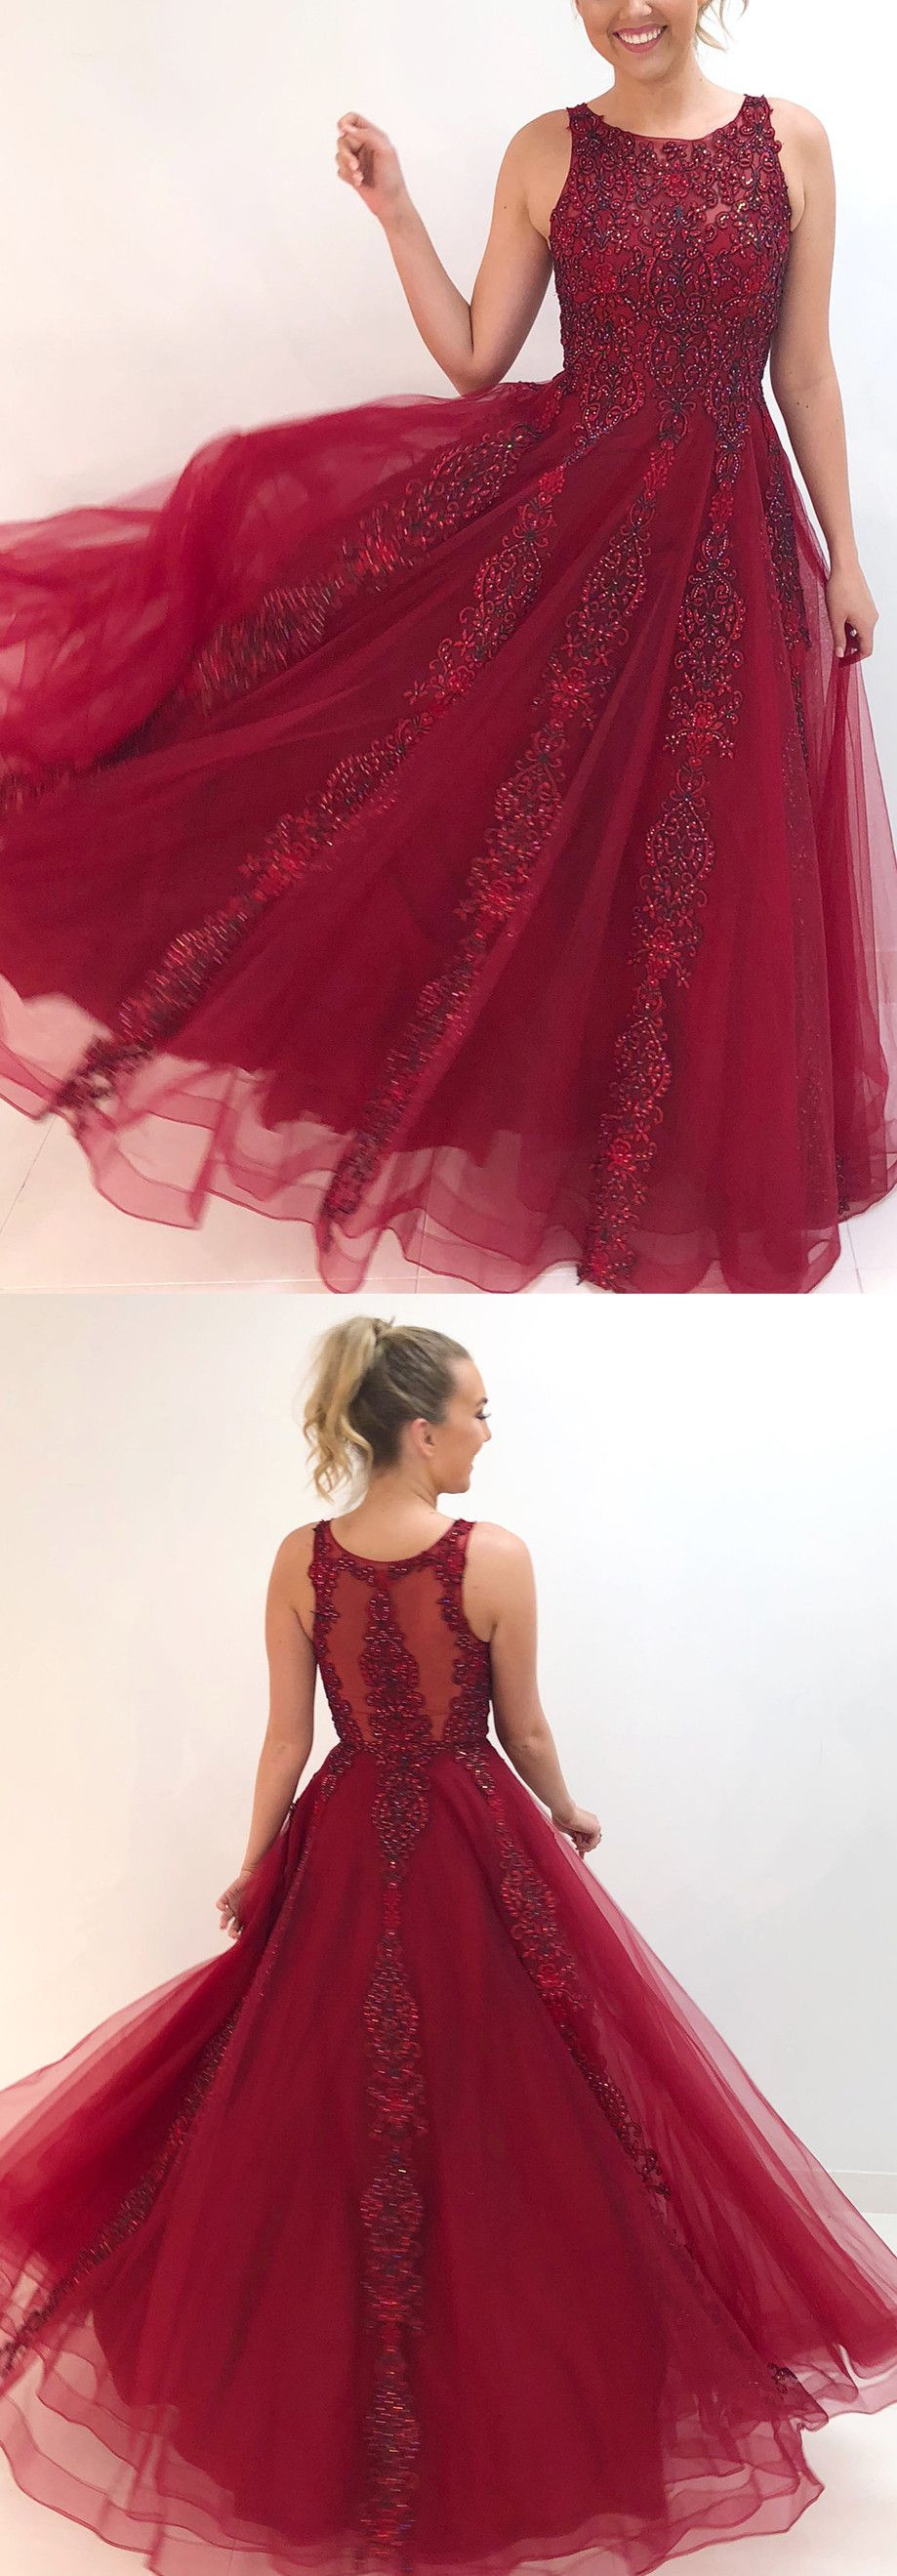 Gorgeous sequins burgundy long formal dress from dreamdressy in